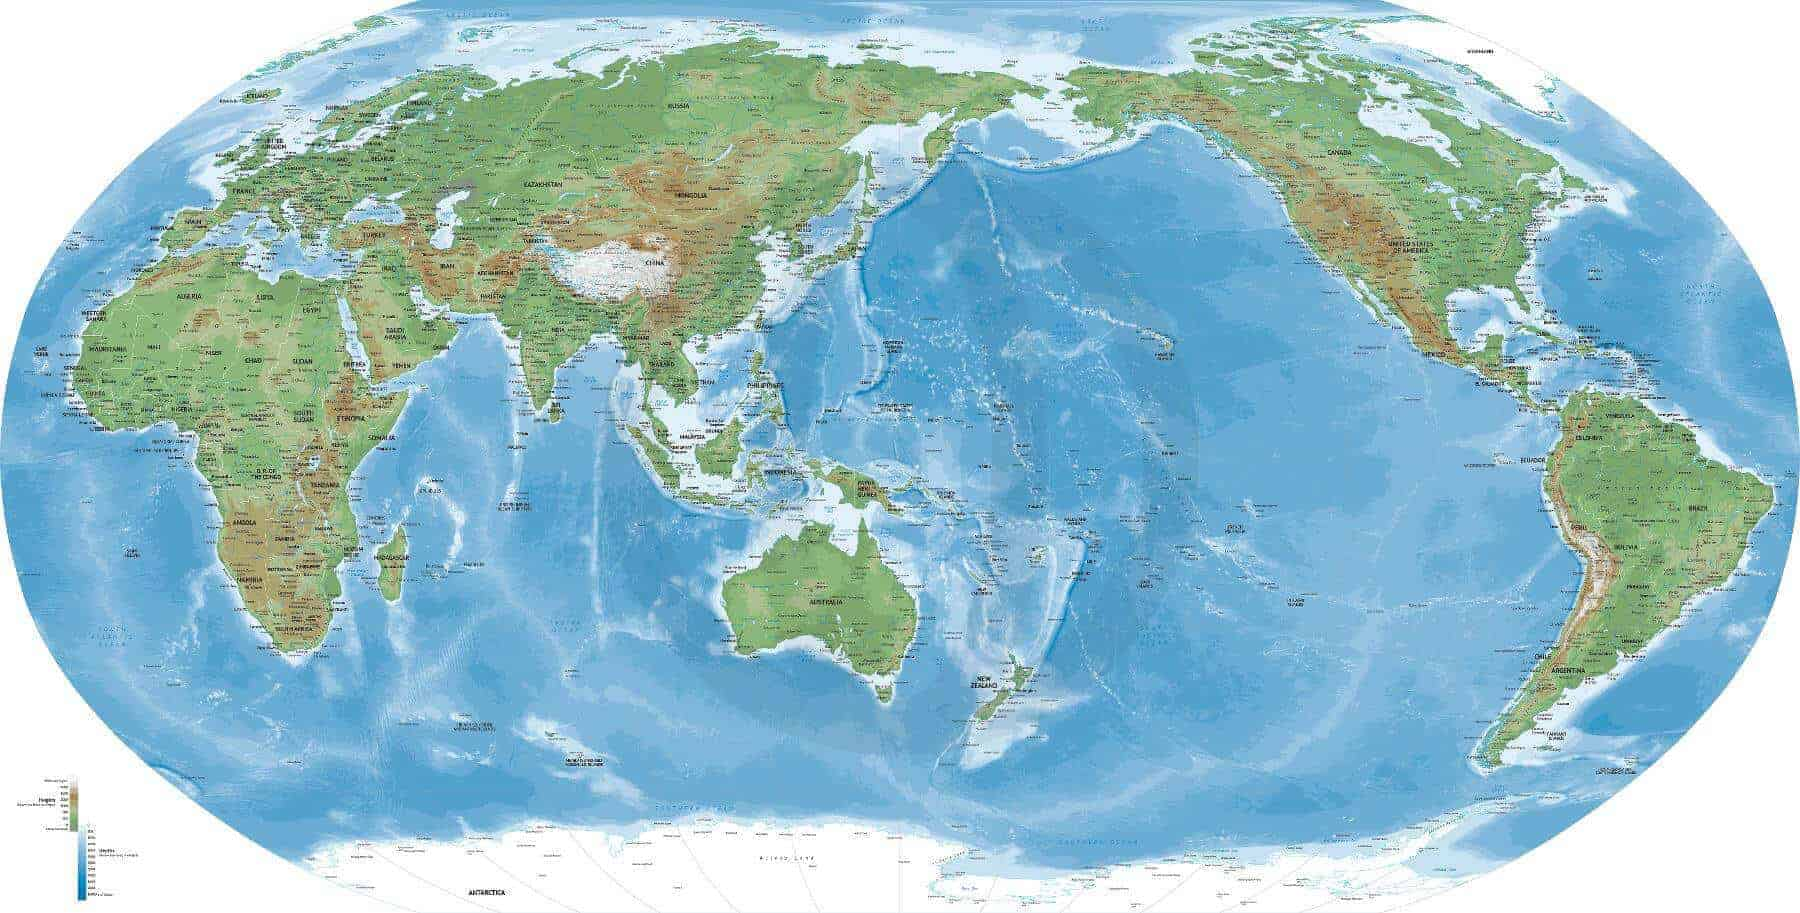 Detailed World Map Robinson Asia-Australia centered | One Stop Map on